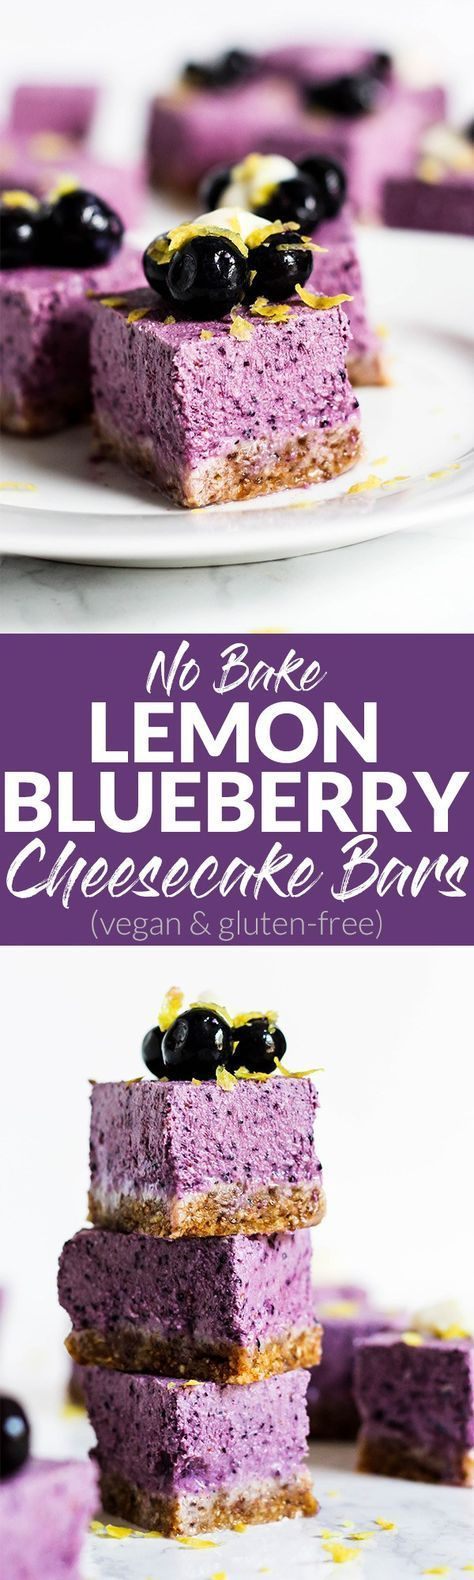 A perfect summer dessert, these No Bake Lemon Blueberry Cheesecake Bars are refreshing & full of fruity flavor! They're vegan, gluten-free & easy to make.